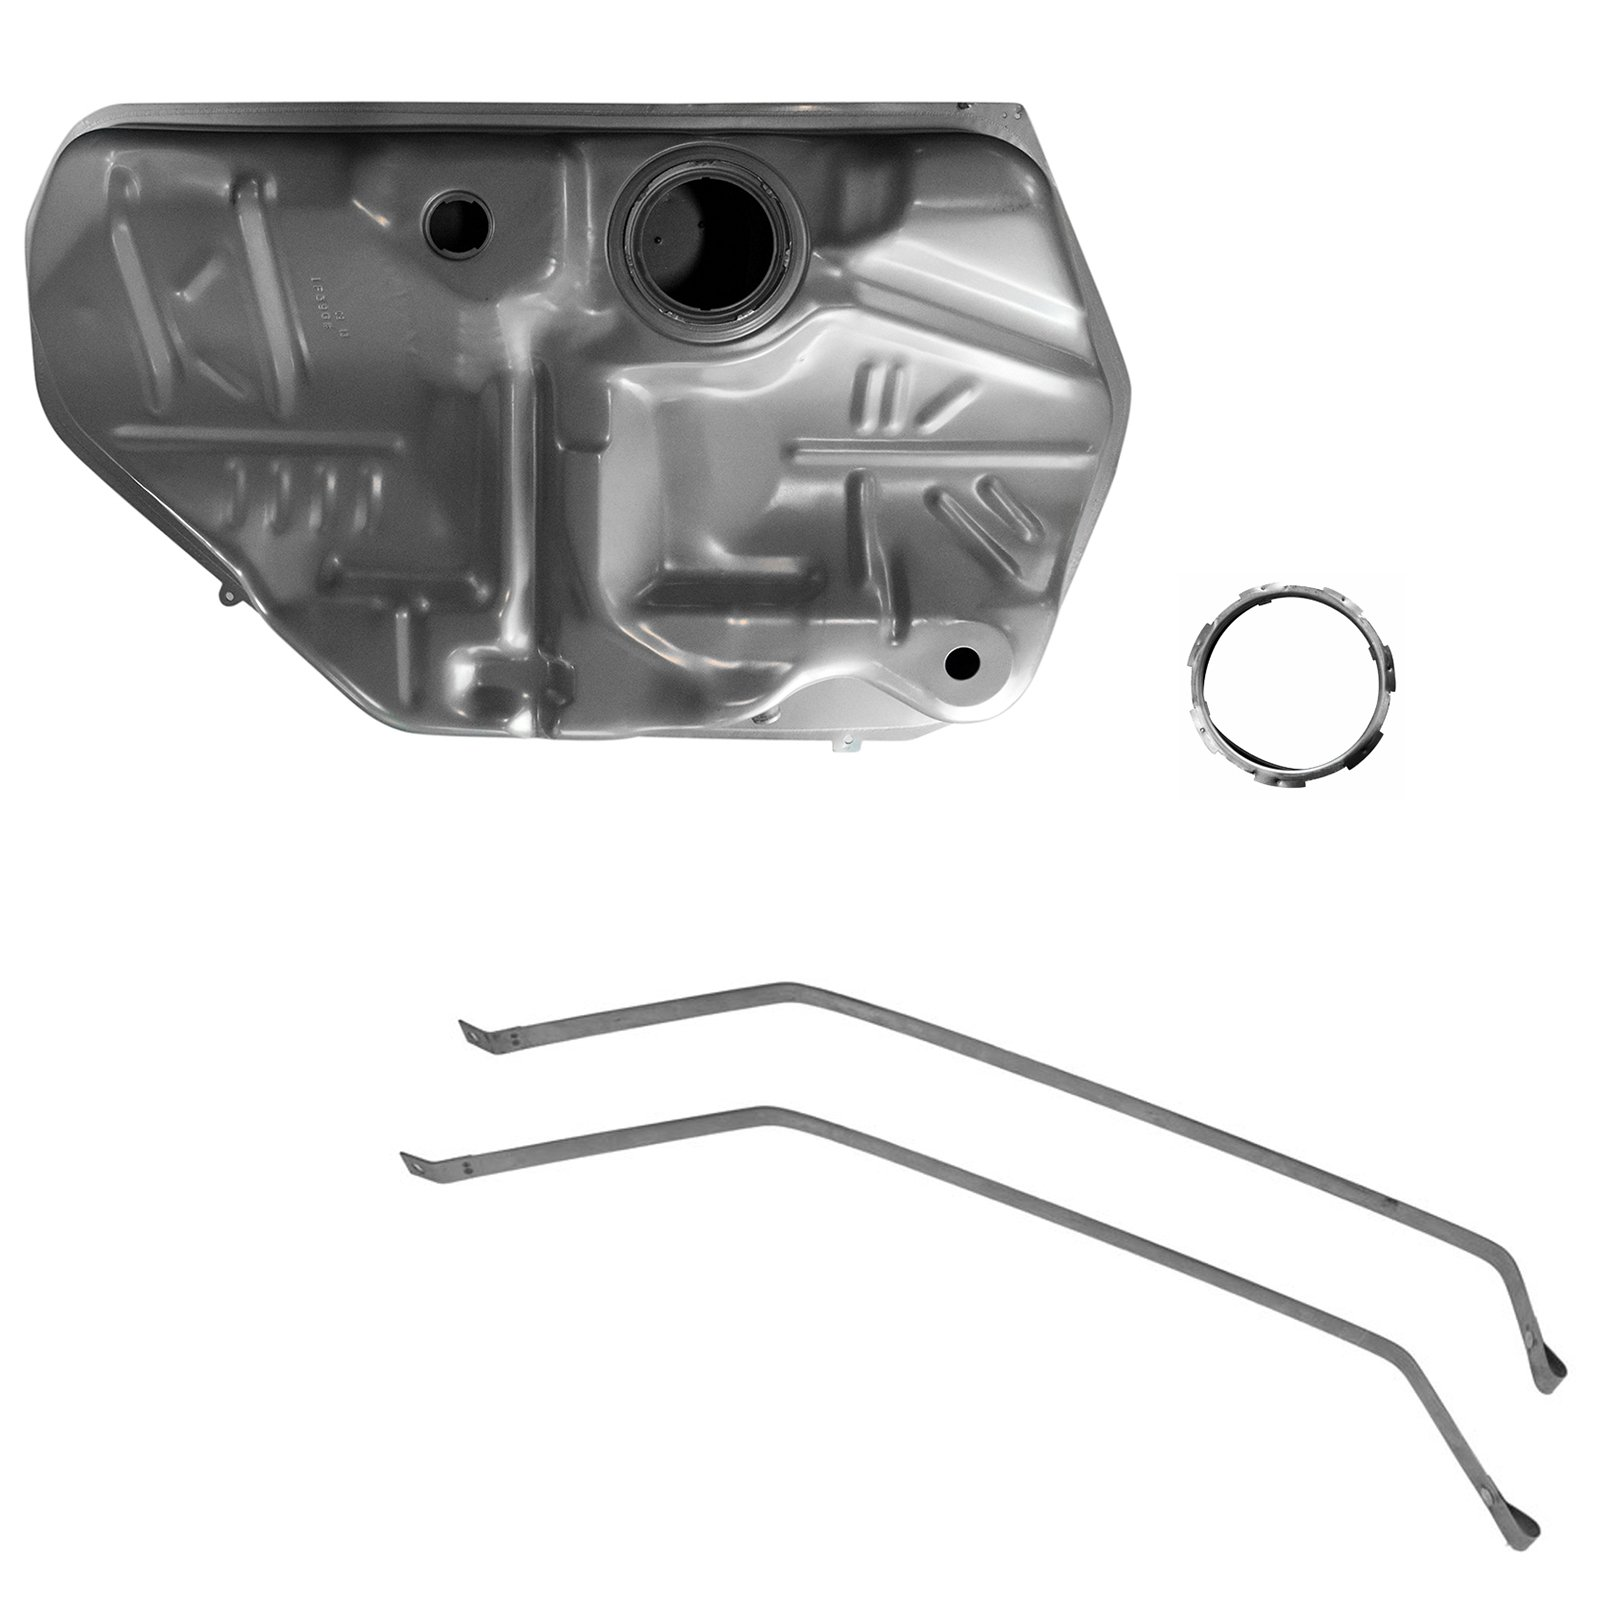 18 Gallon Fuel Gas Tank and Strap Kit Set for Ford Mercury Taurus Sable